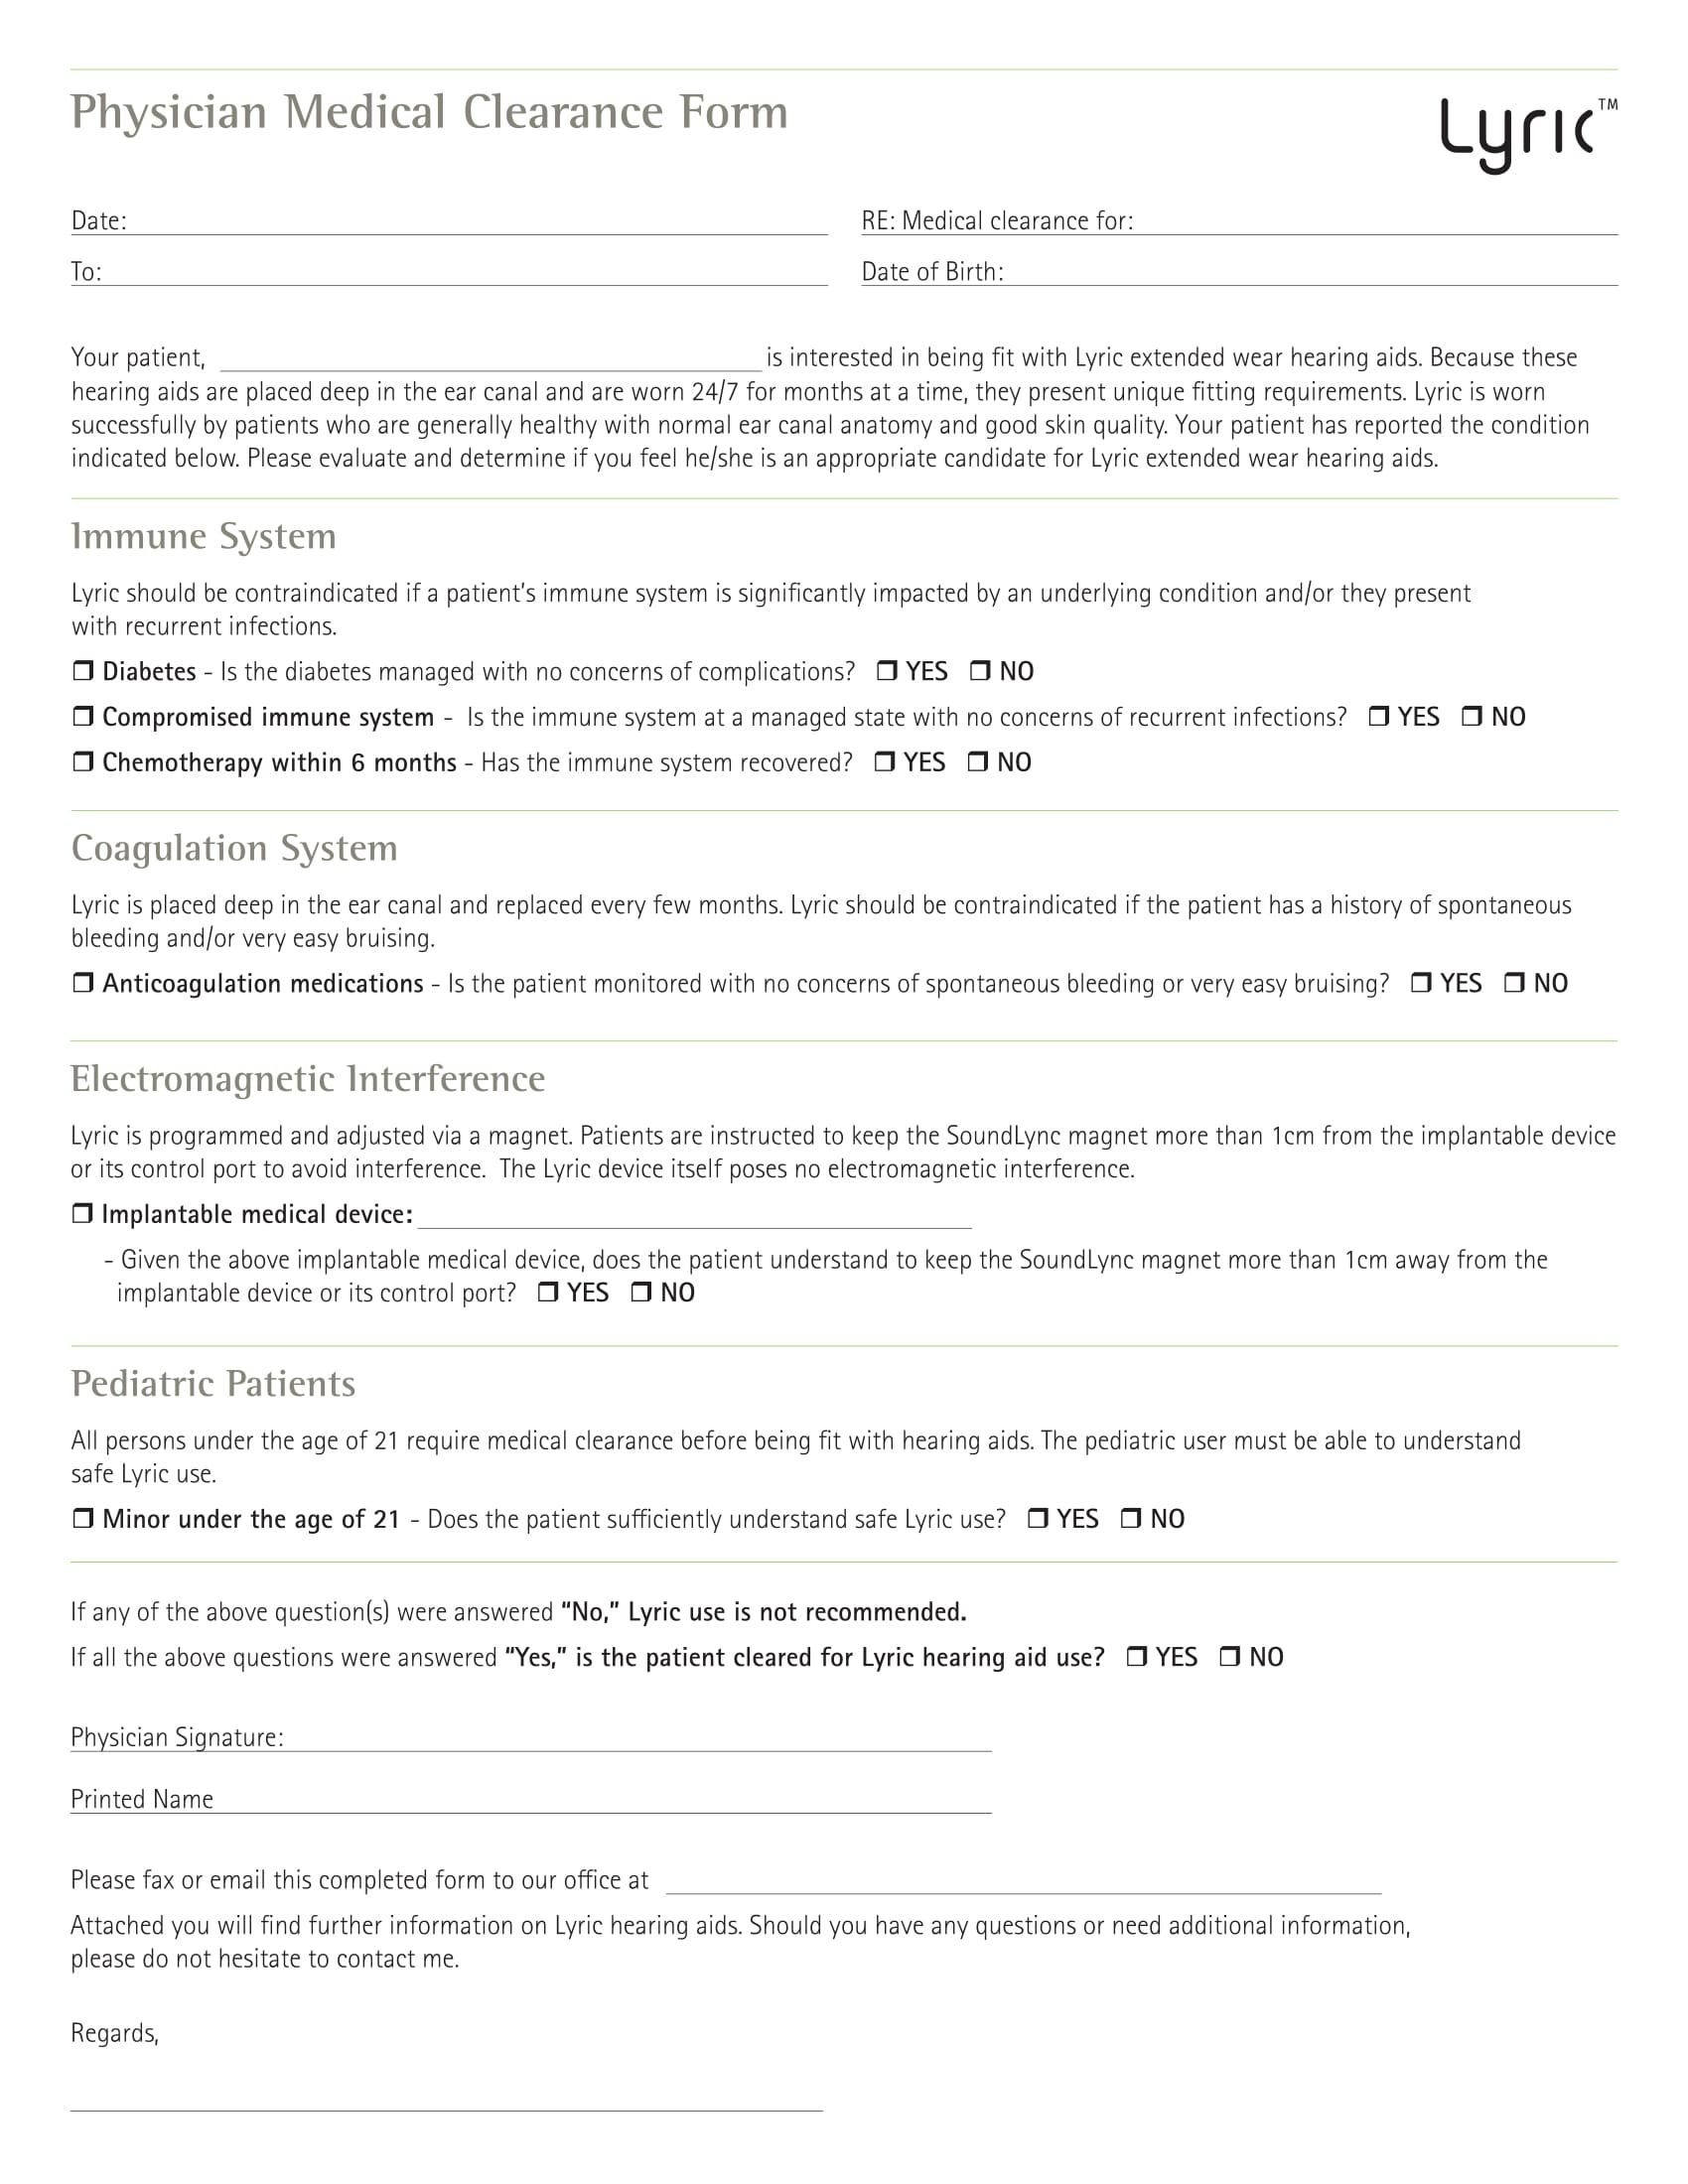 Physician Medical Clearance Form 11